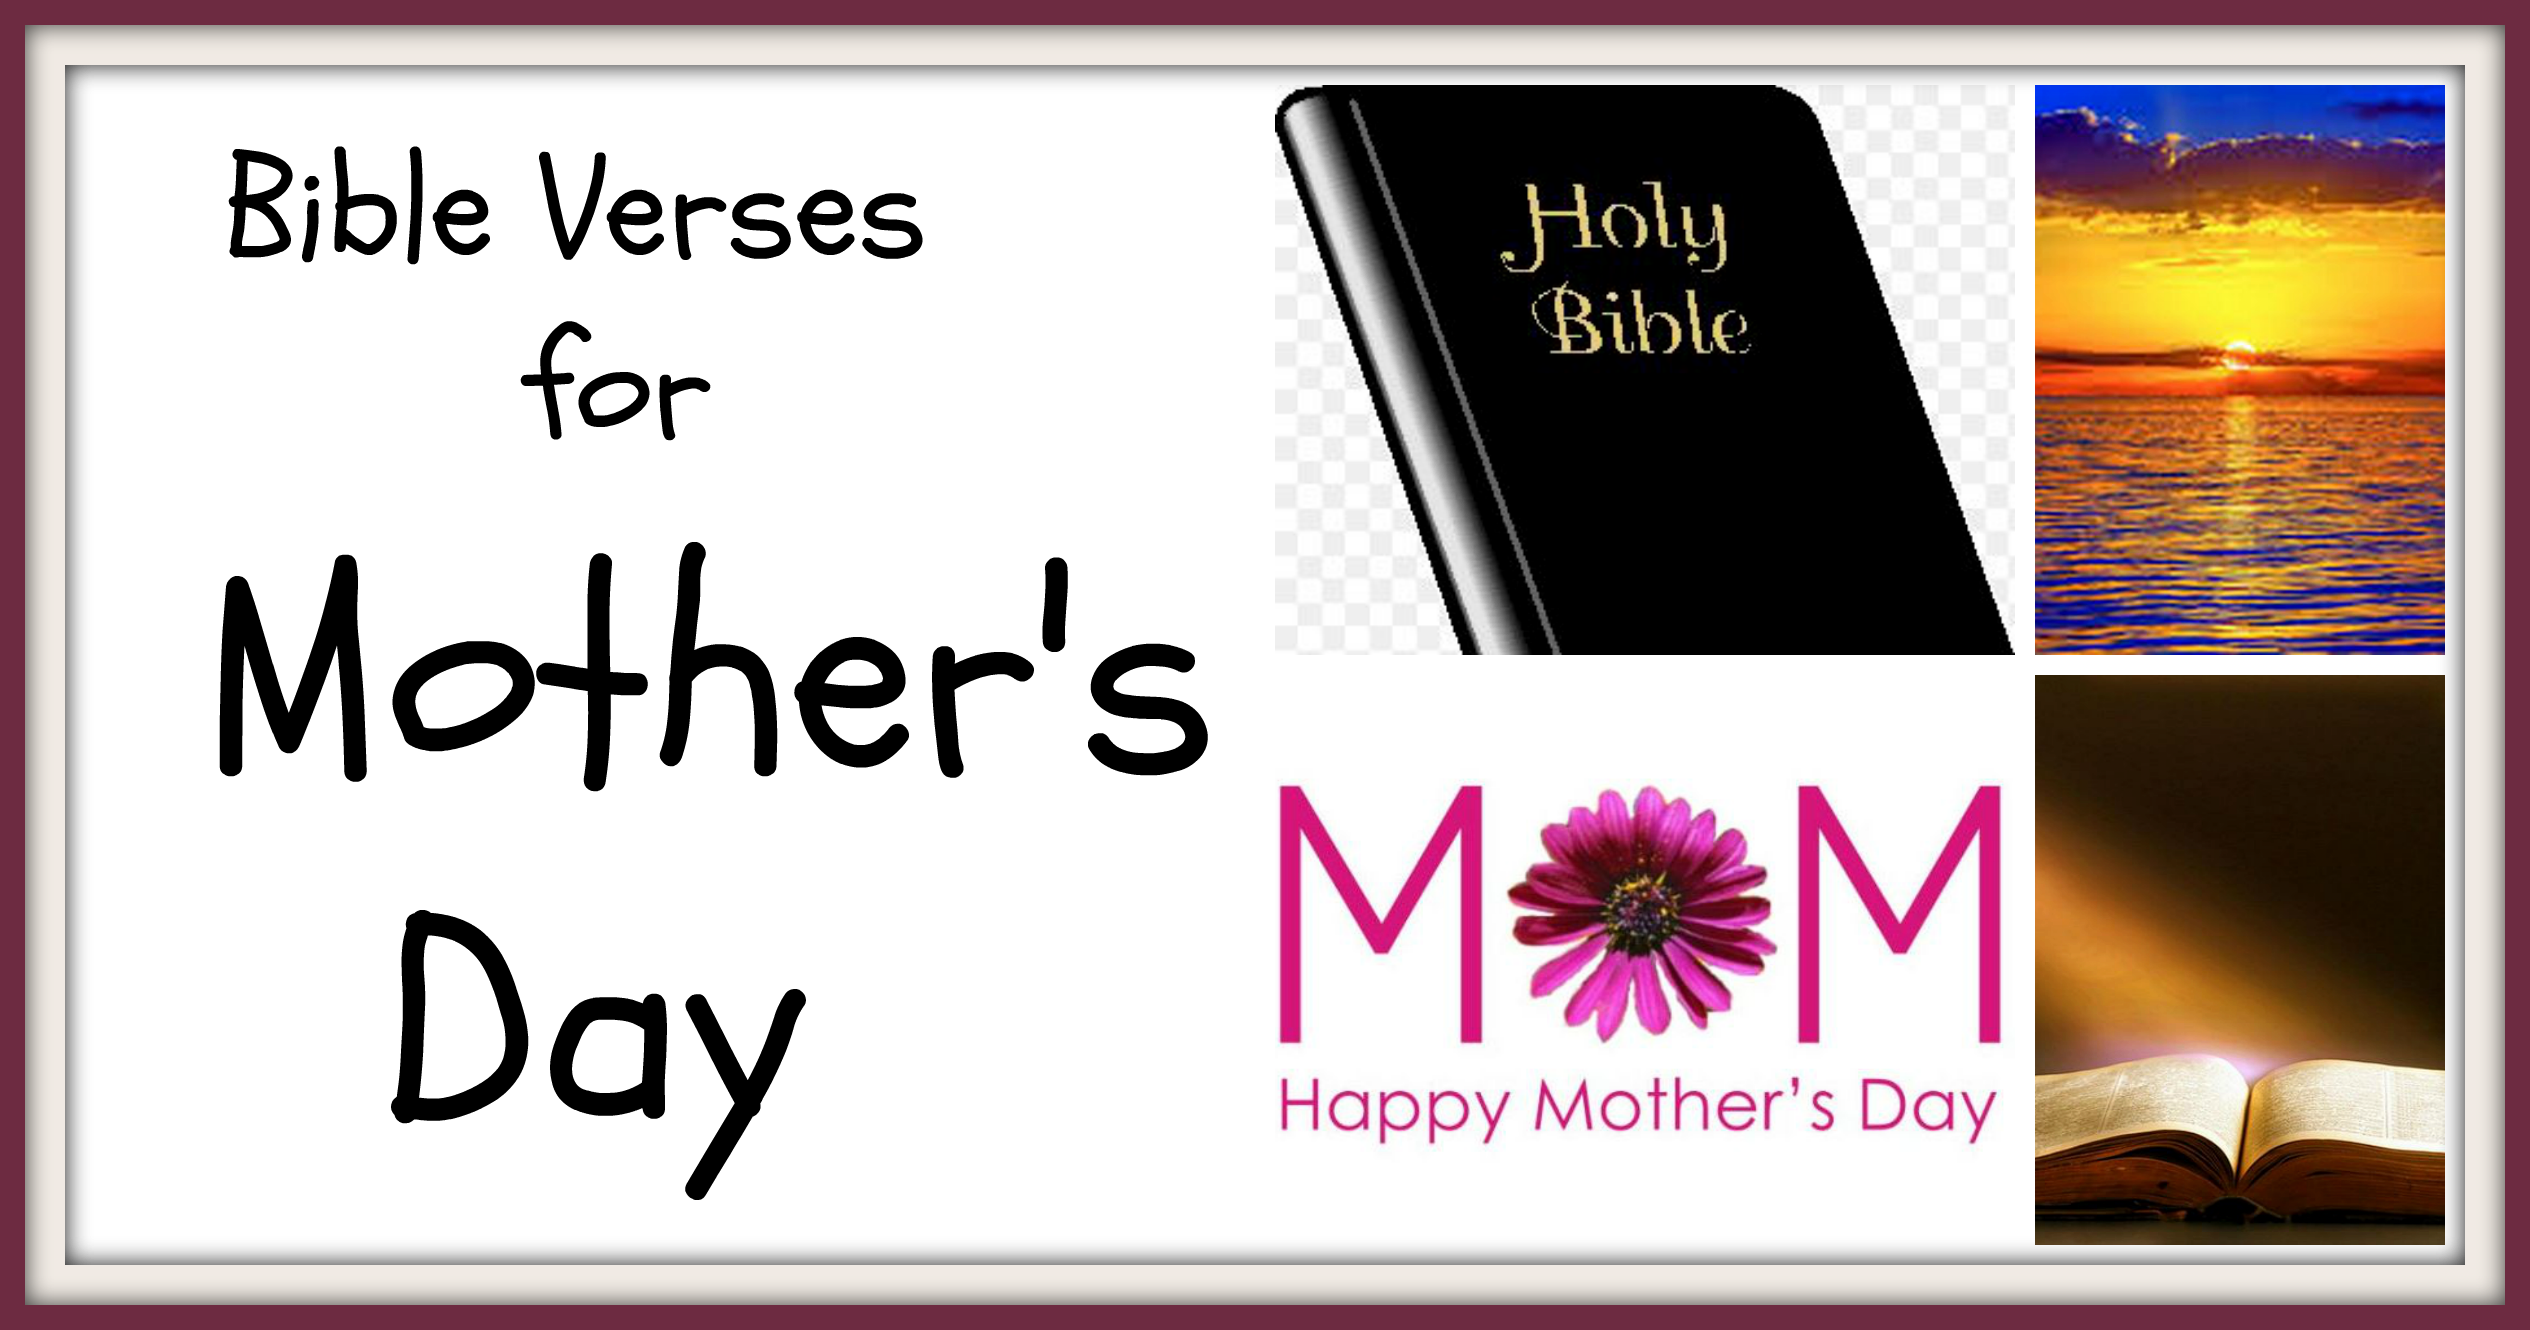 Bible Quotes About Mothers Captivating Bible Verses For Mother's Day  Family Finds Fun